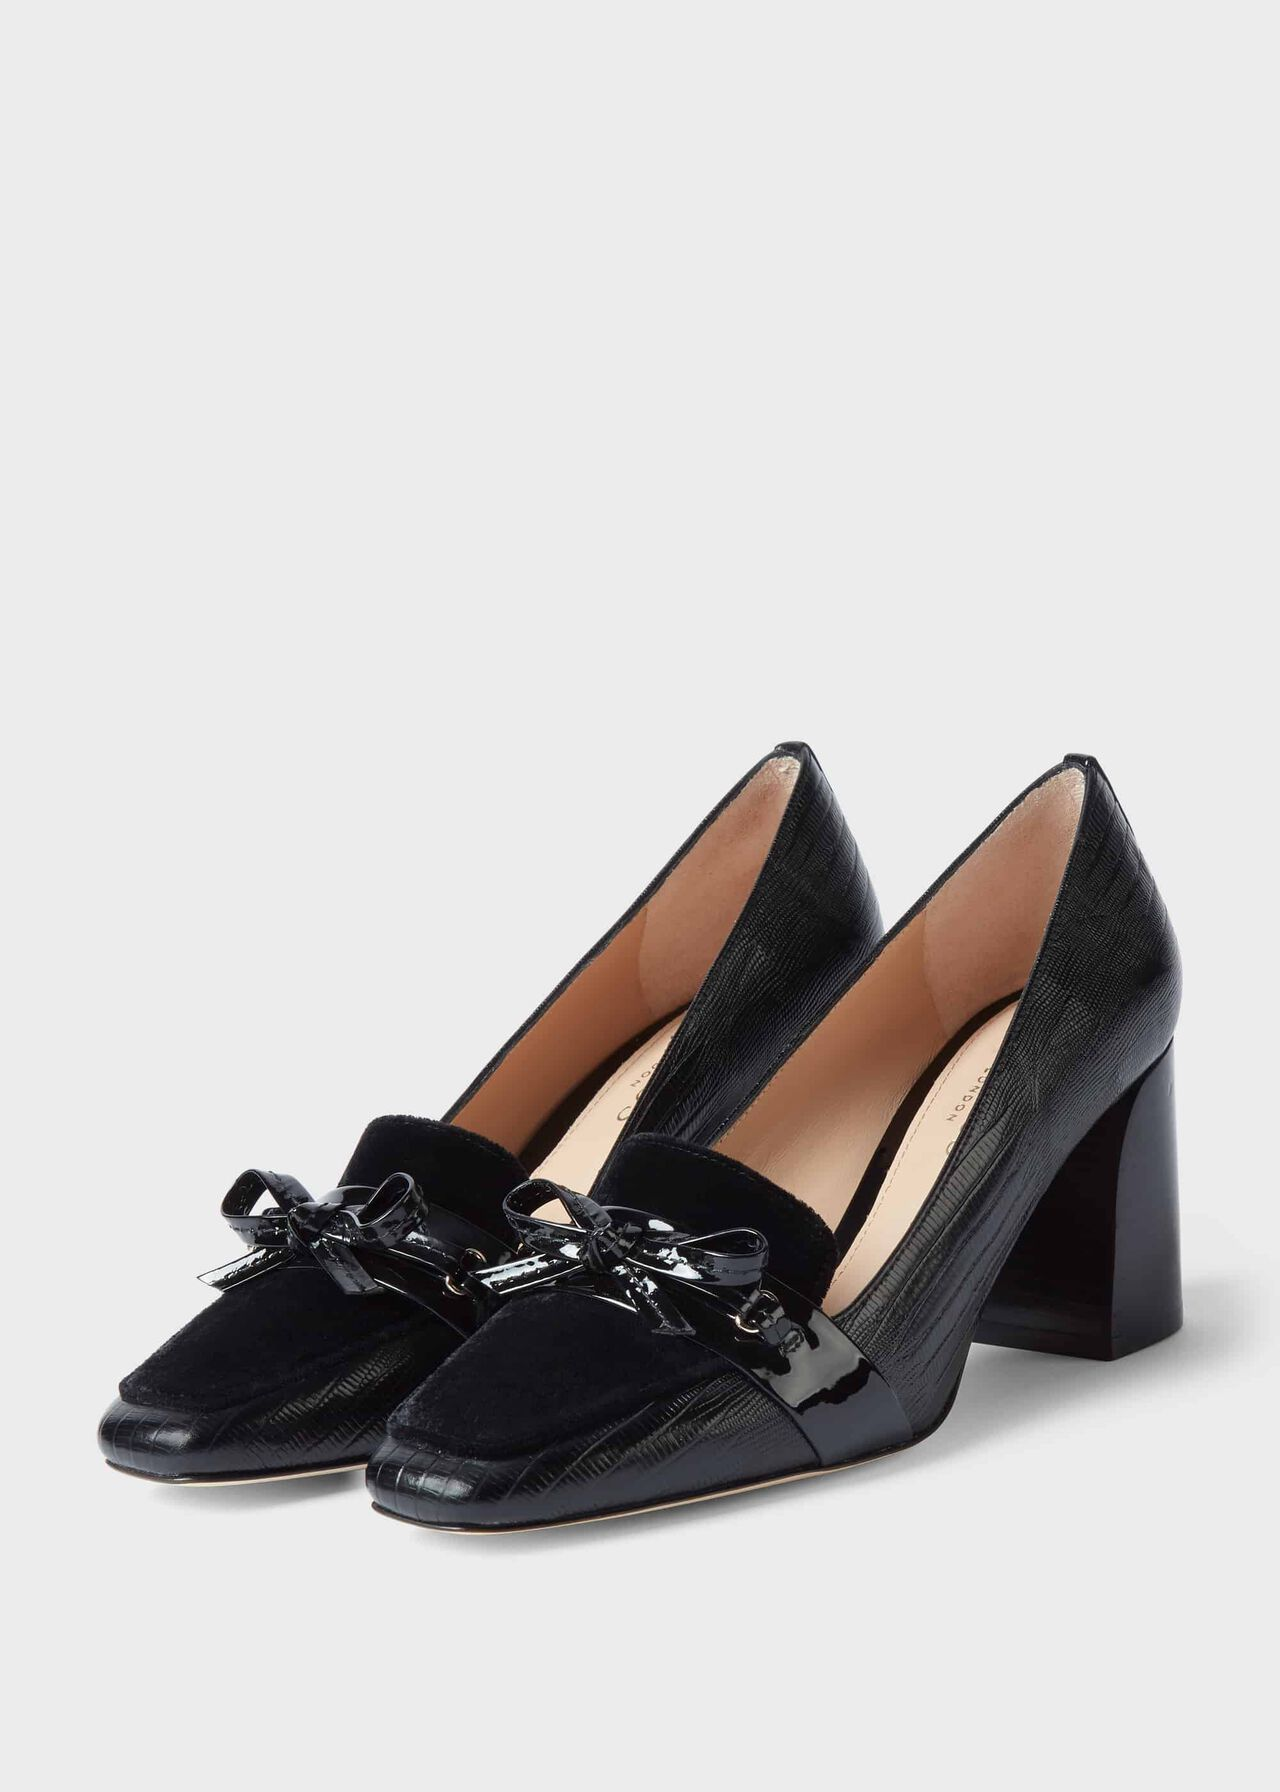 Katherine Leather Reptile Court Shoes Black